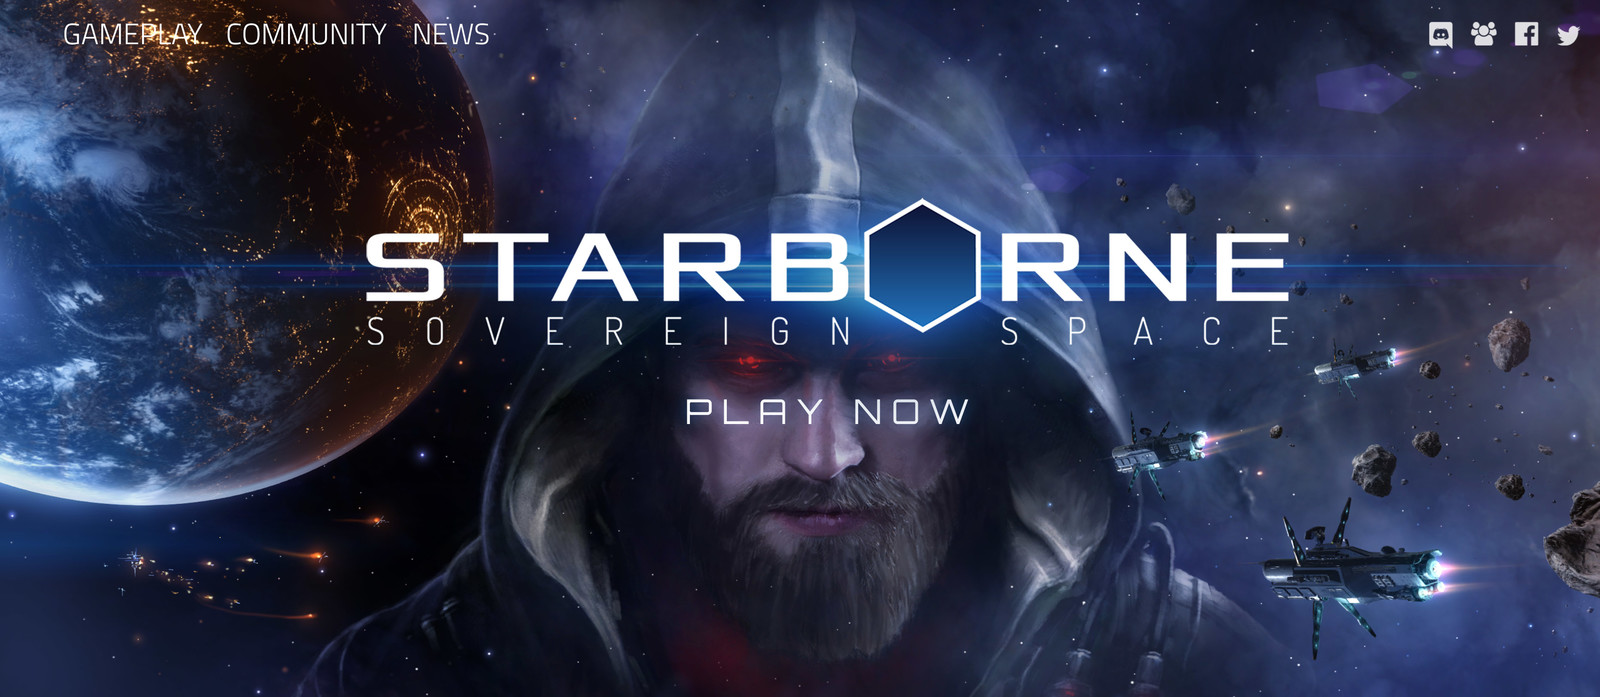 Cover image for the Starborne website with logo and links